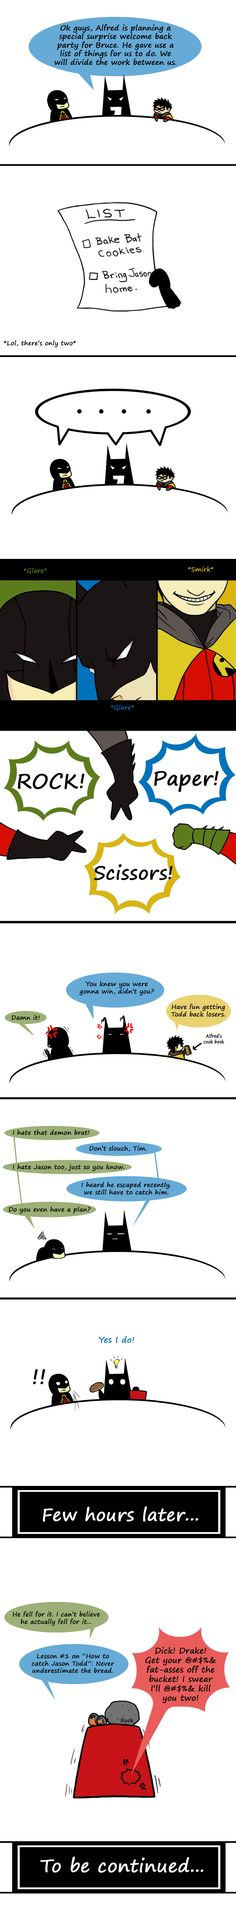 Catching Jason Todd by ~CrimsonHorror  DAMIAN YOU LOOK SO CUTE AND TINY